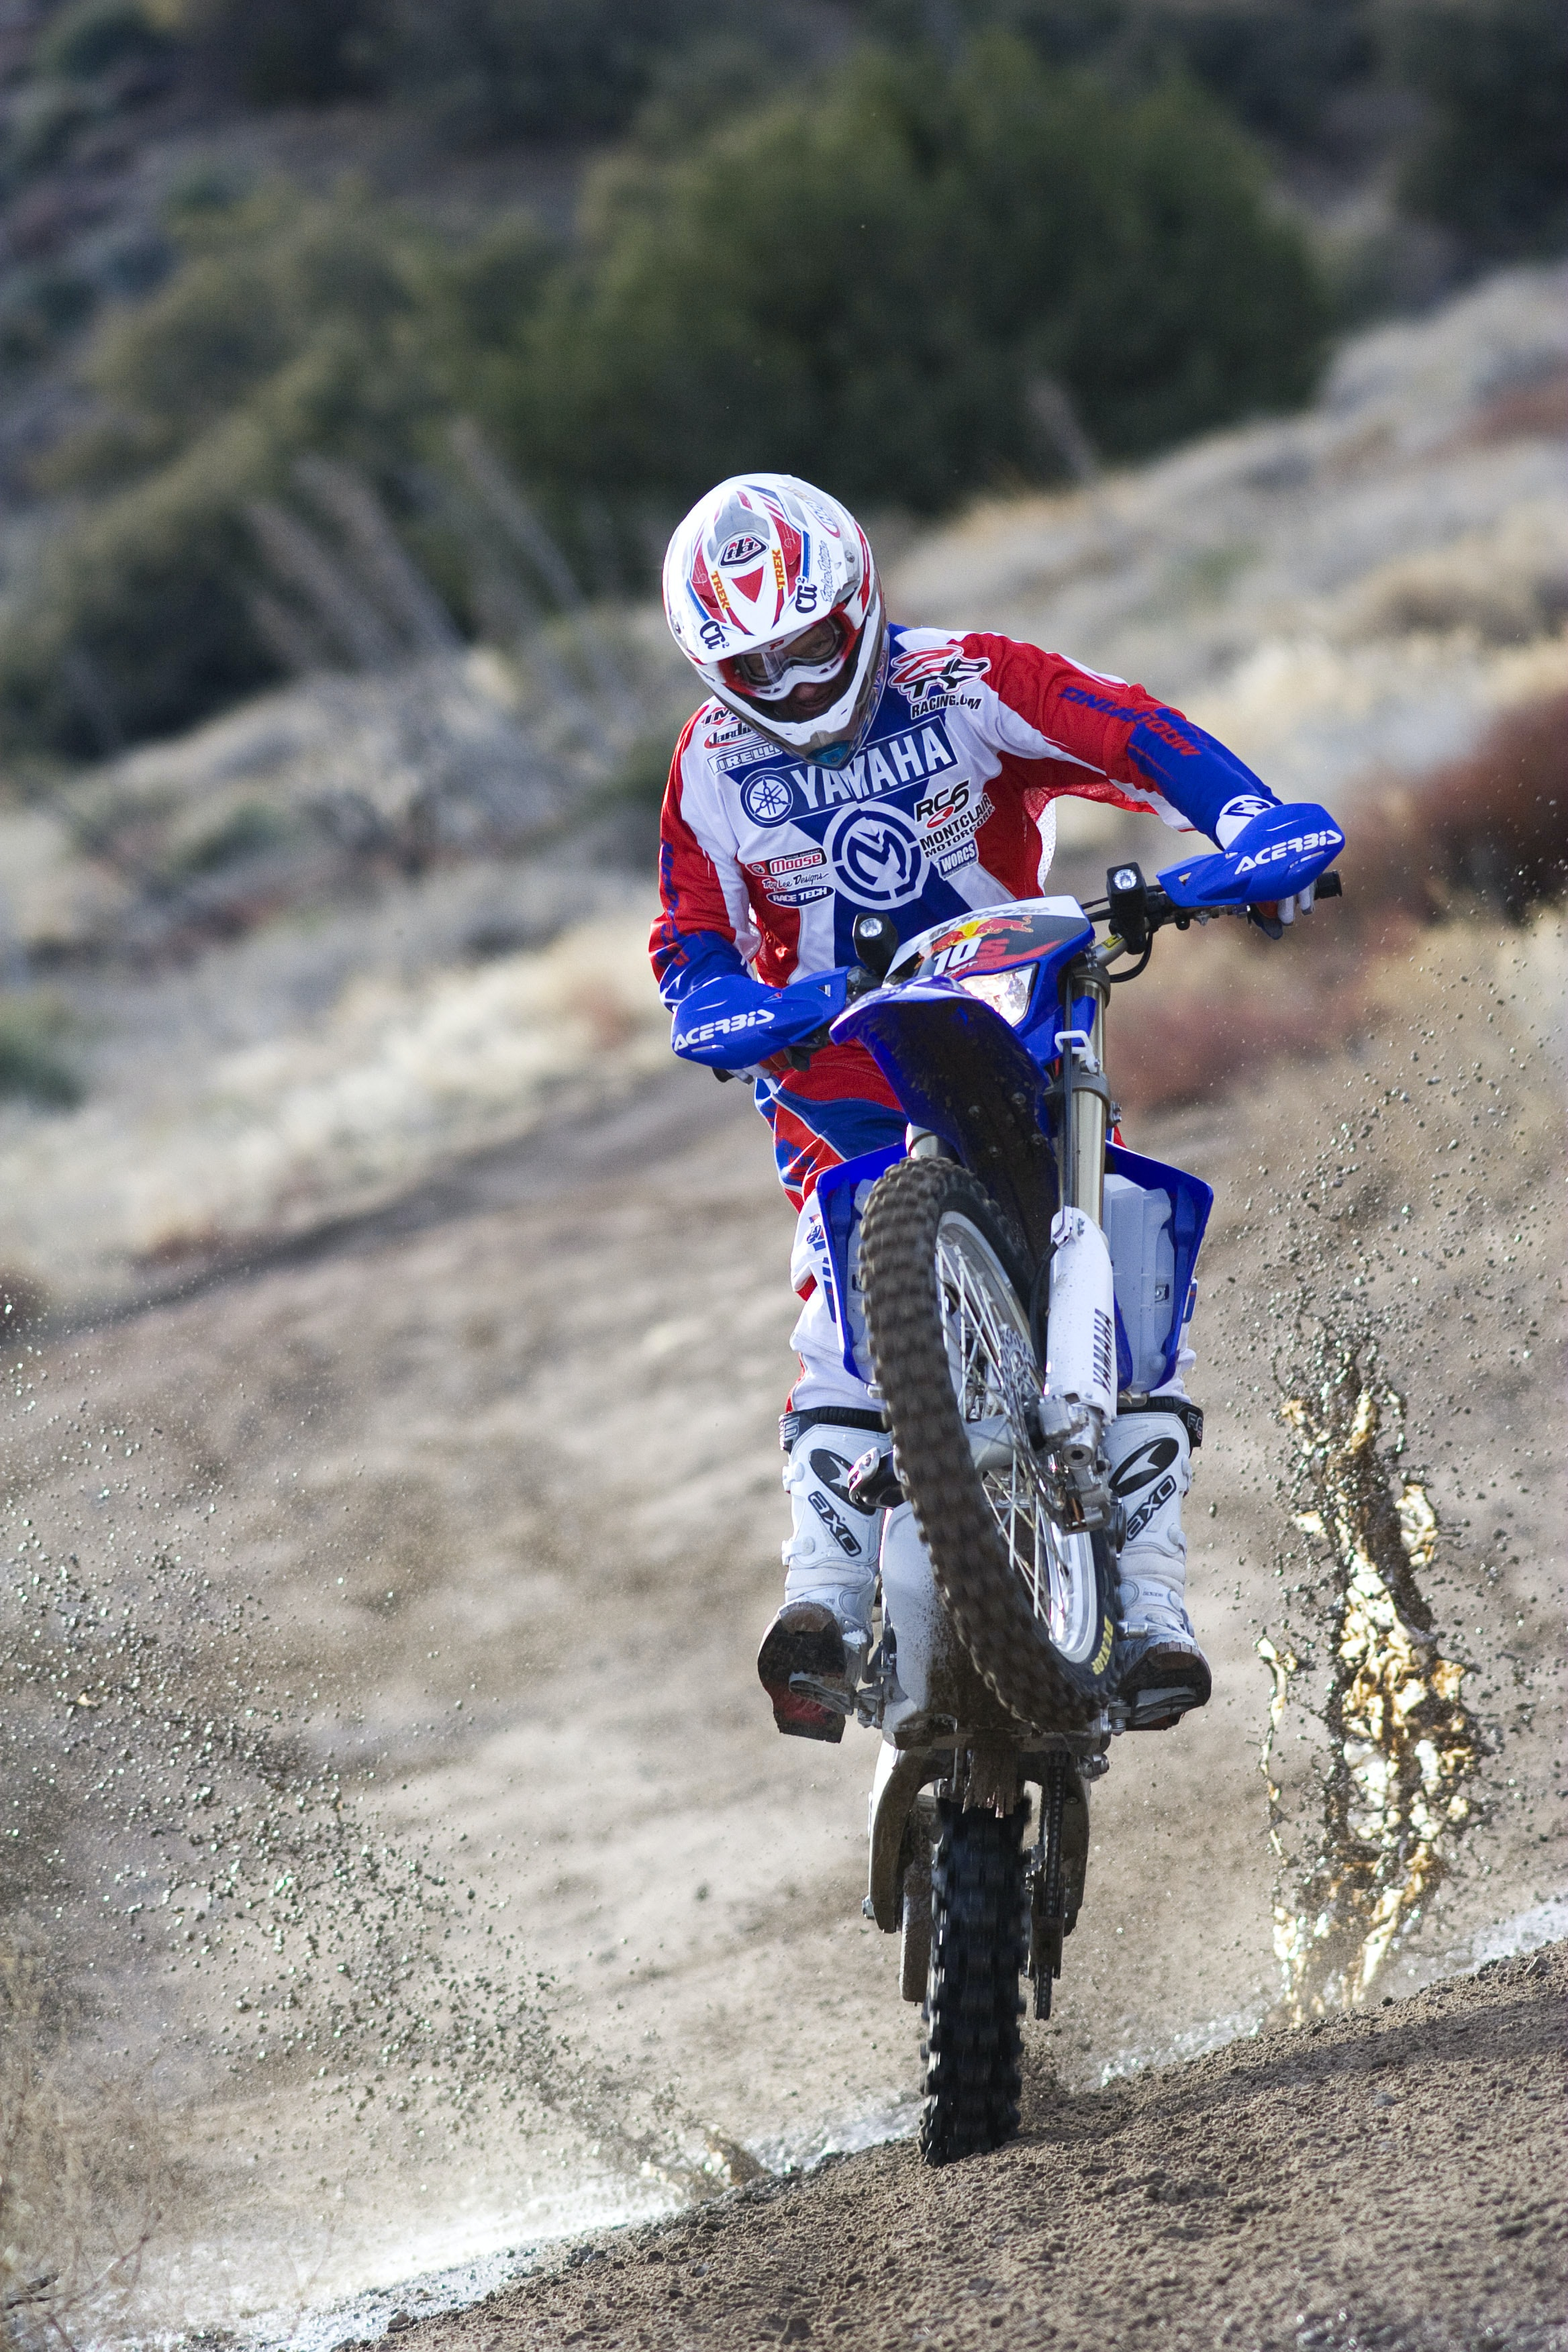 A man riding a dirtbike offroad in Gorman